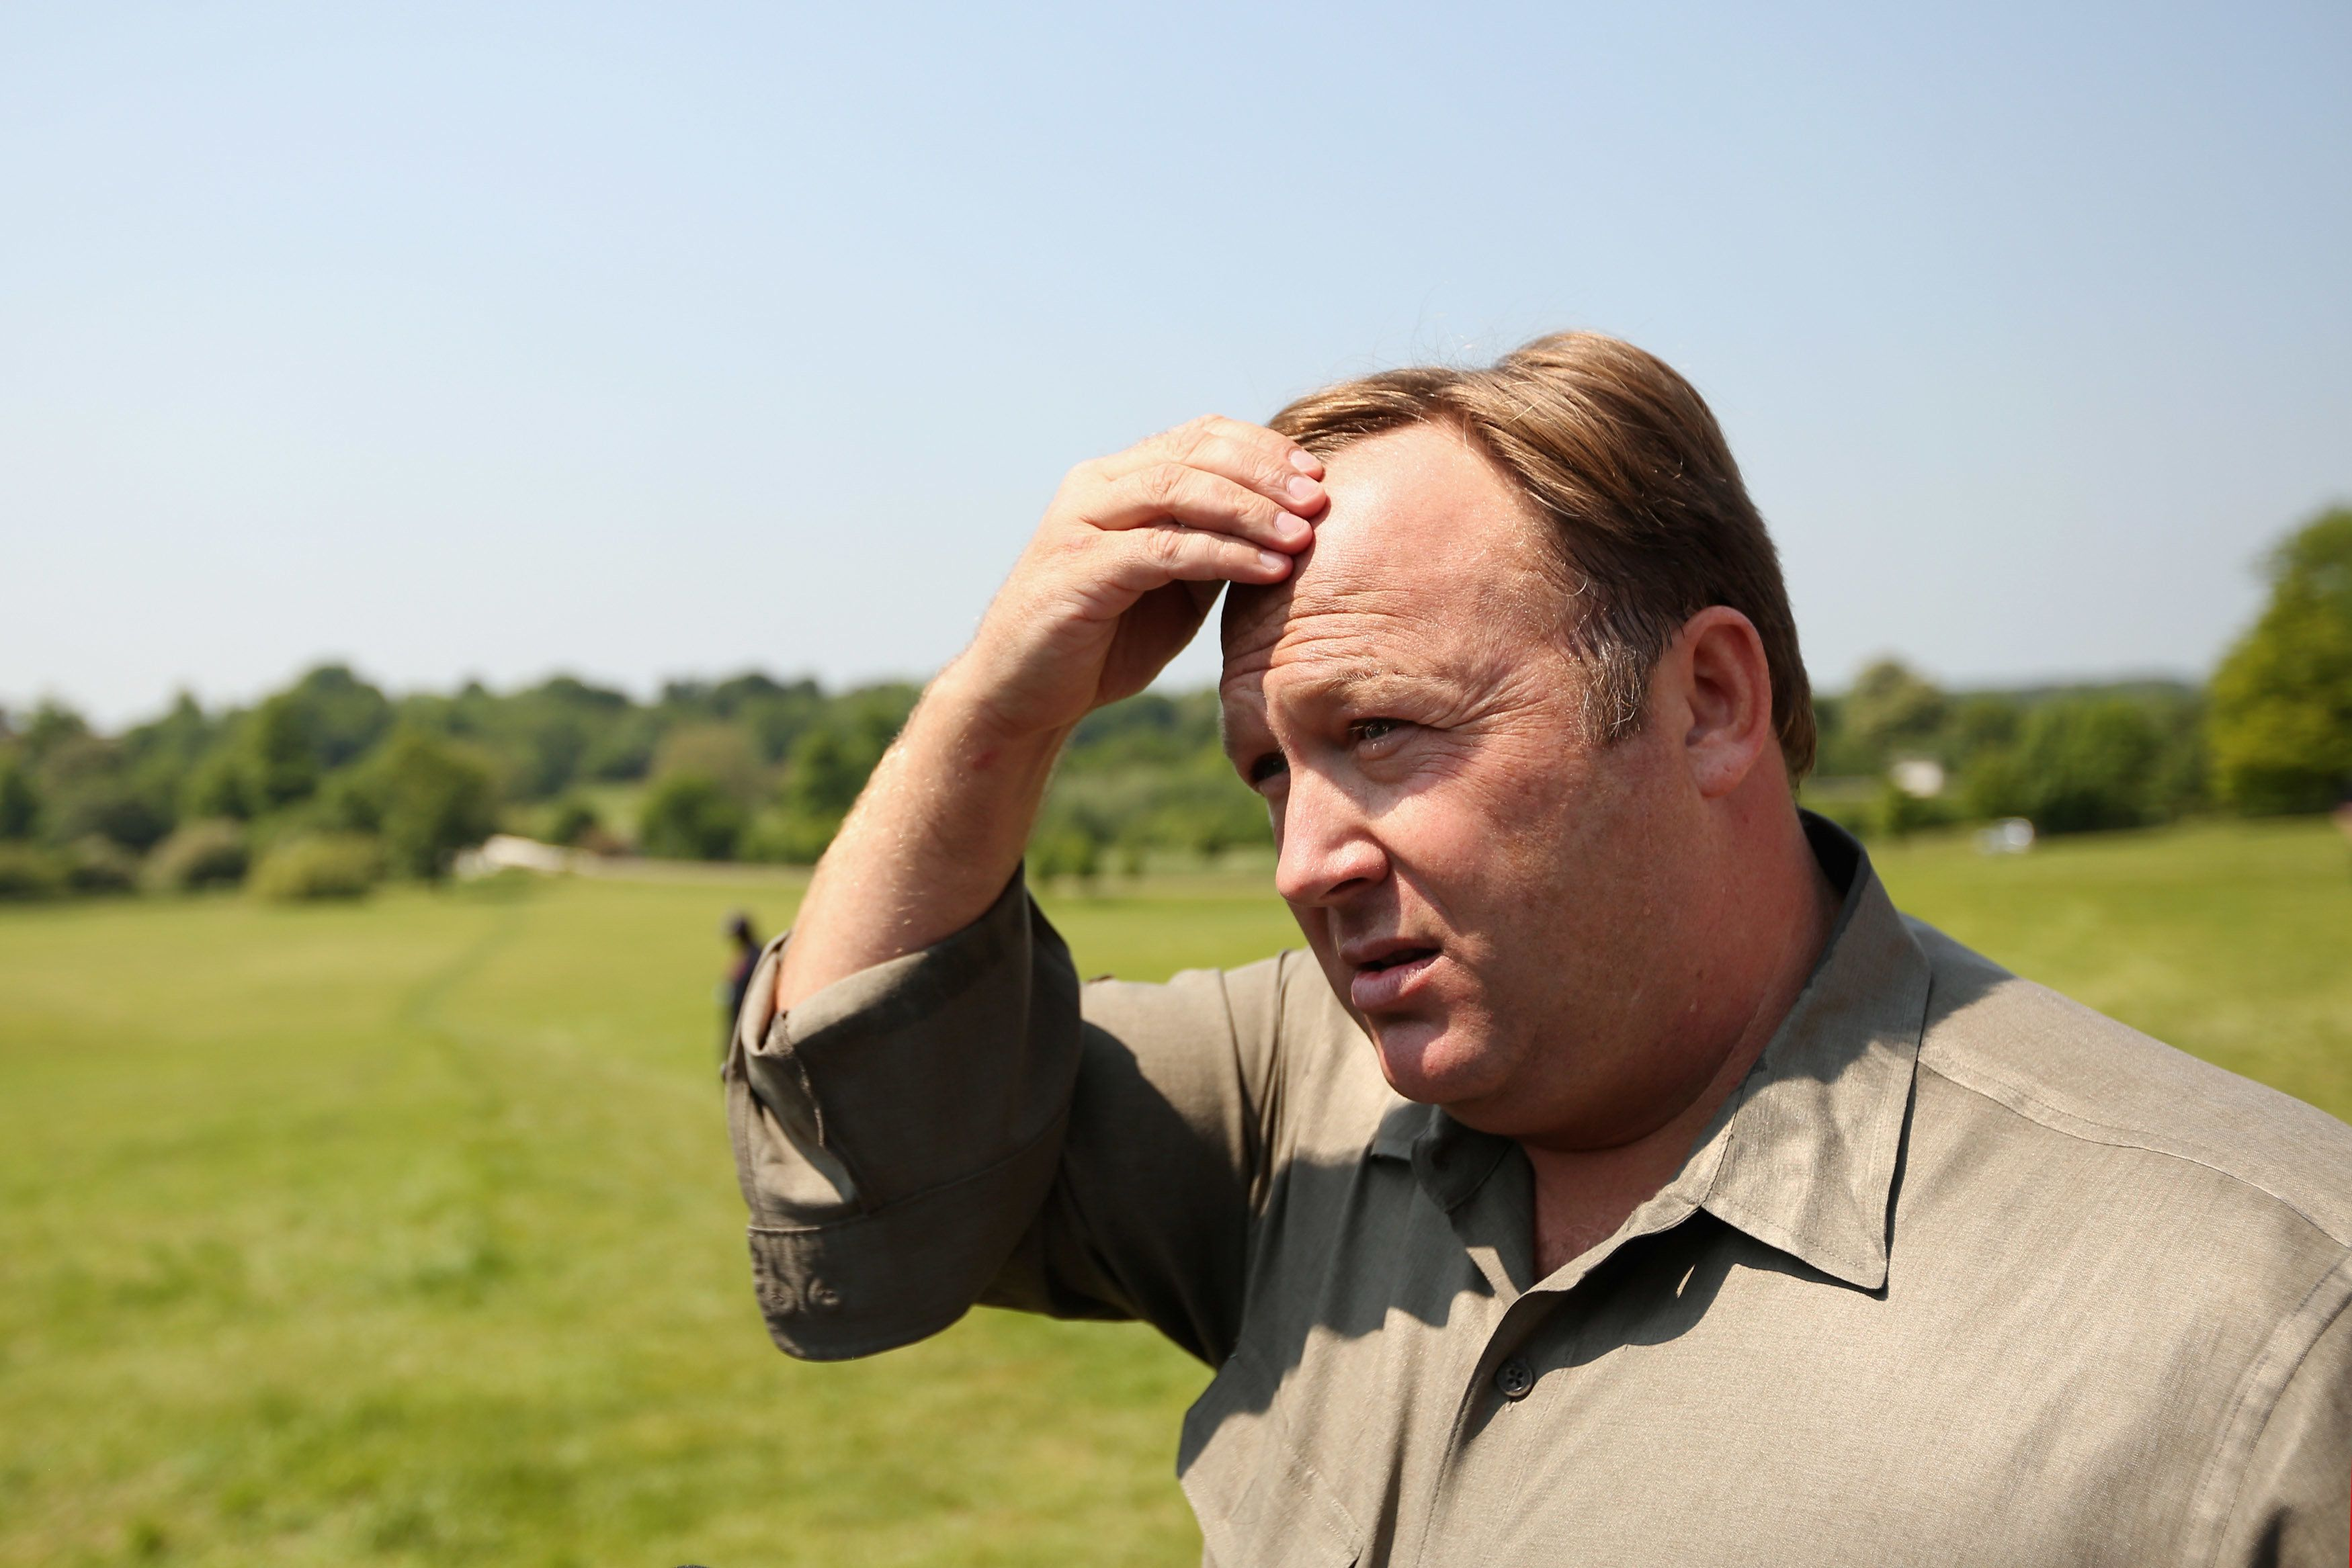 Here Are The Most Outrageously Offensive And False Things Alex Jones Has